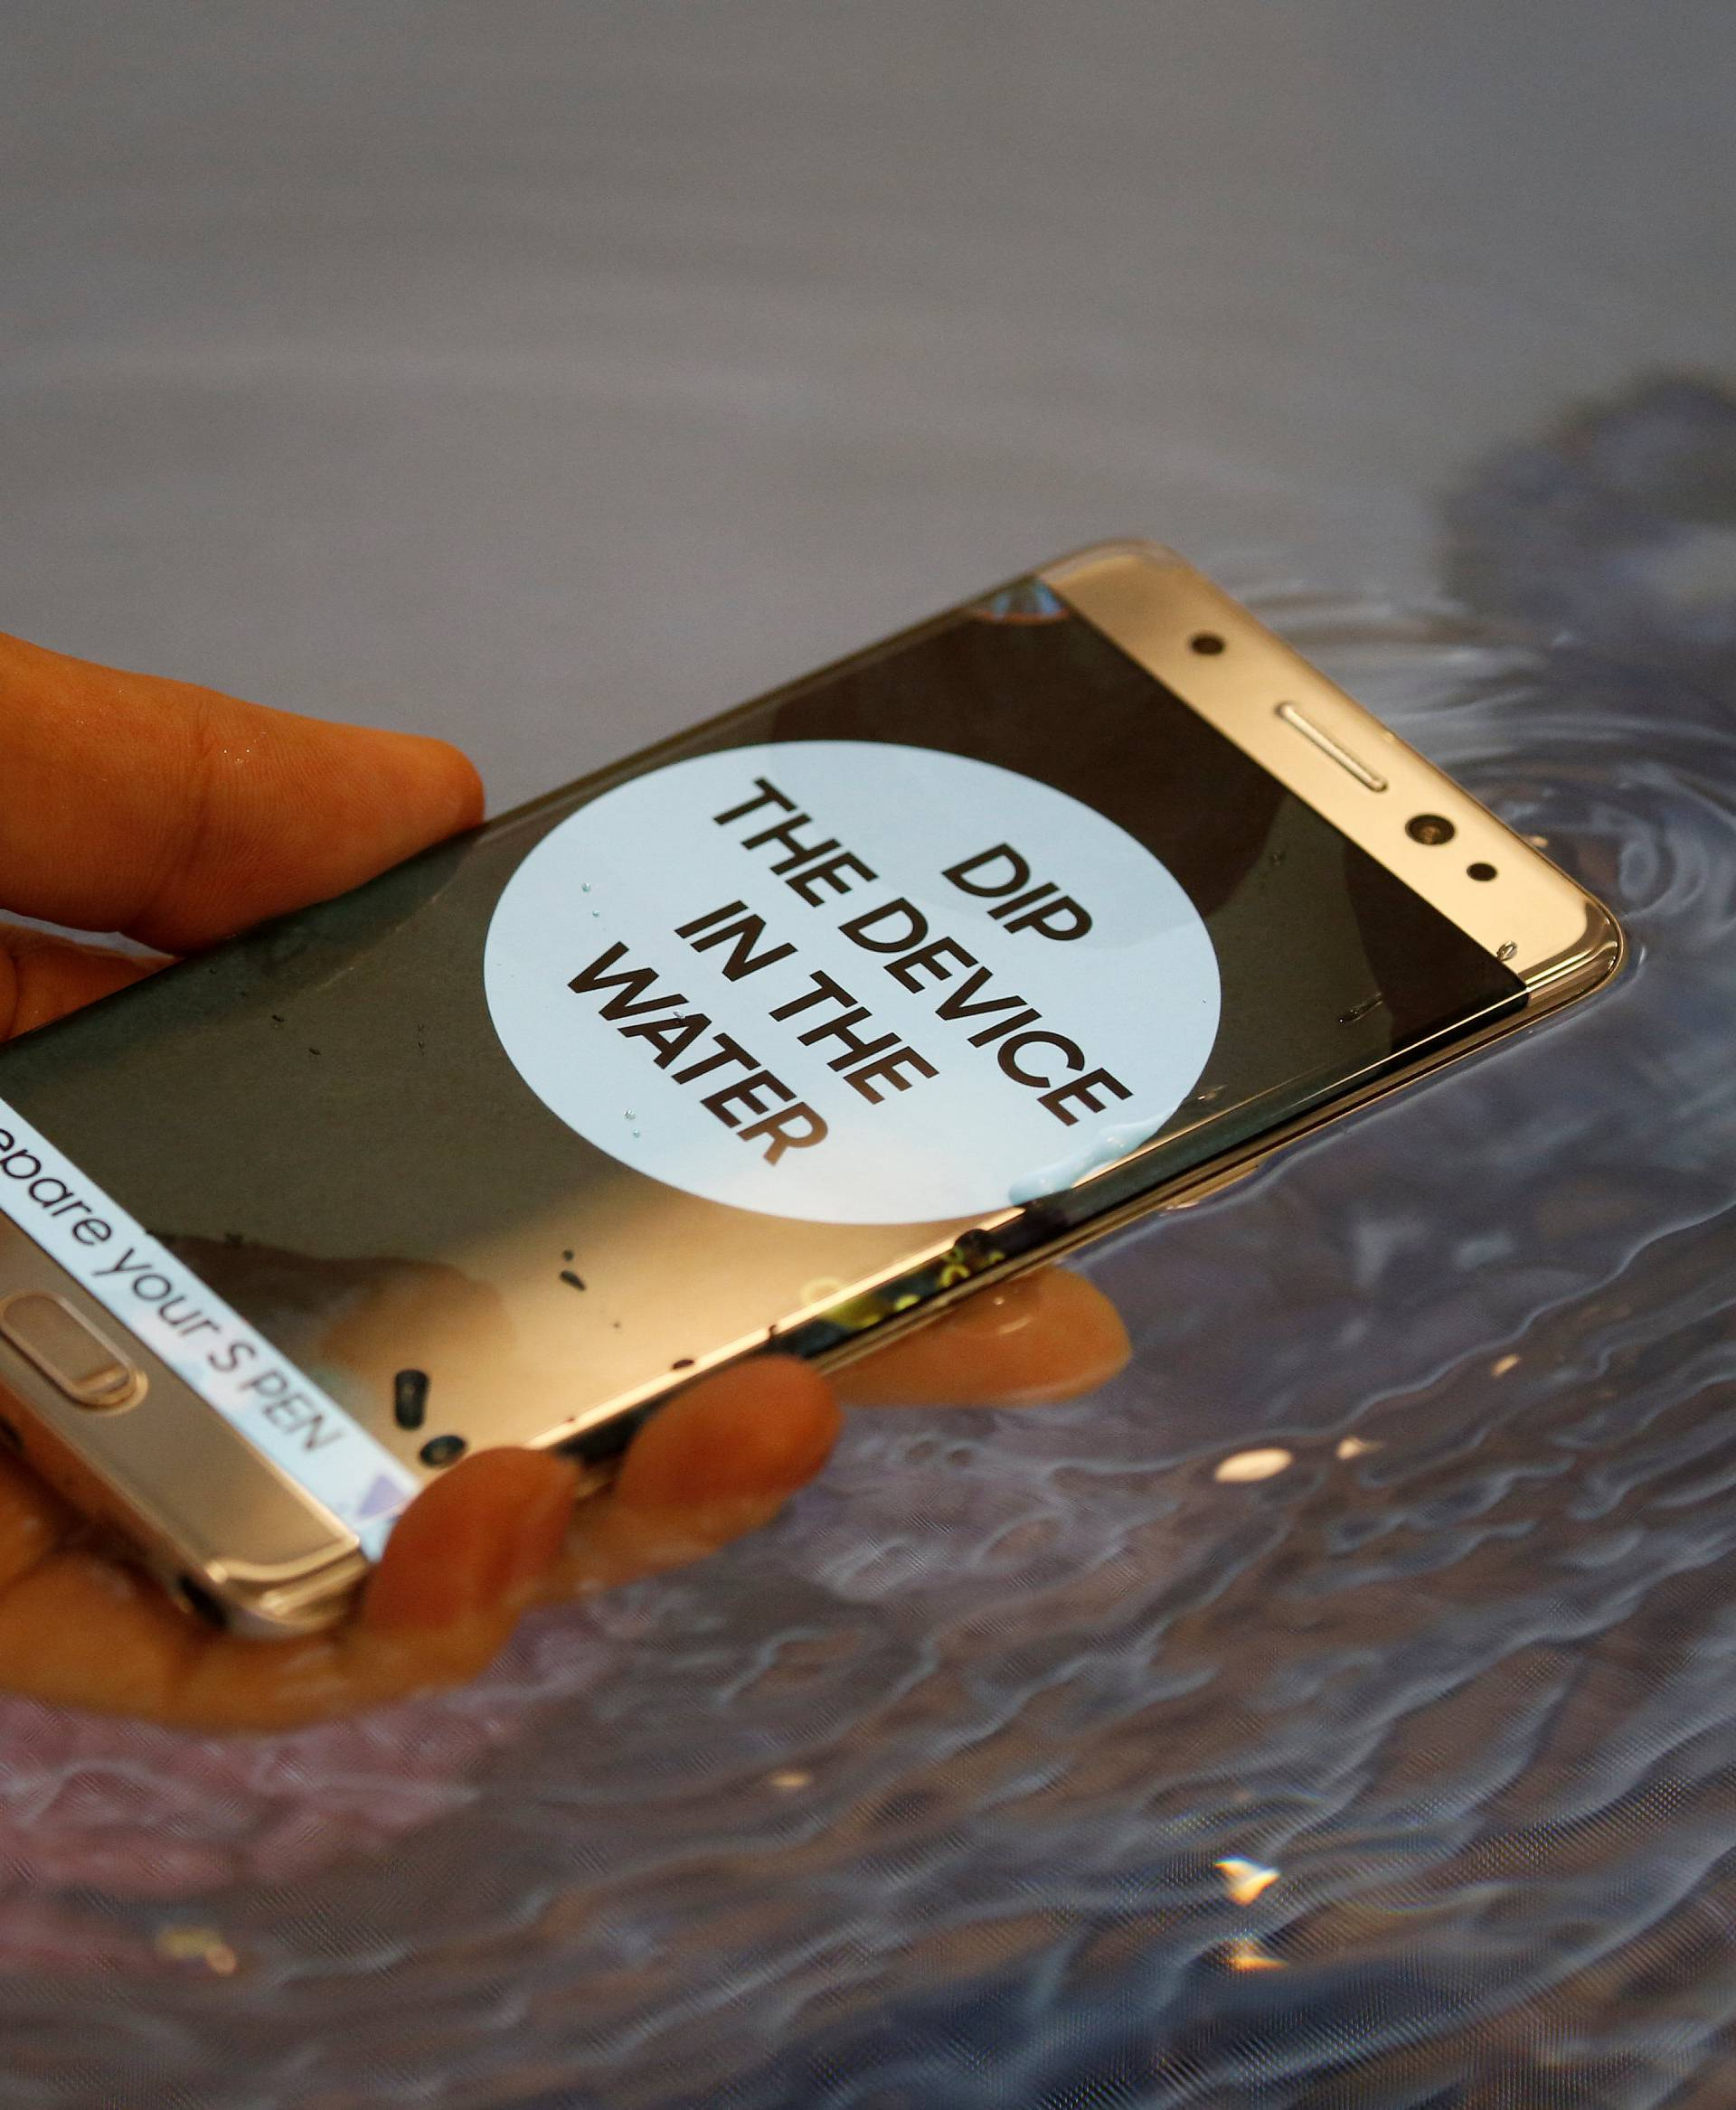 A model demonstrates waterproof function of Galaxy Note 7 new smartphone during its launching ceremony in Seoul